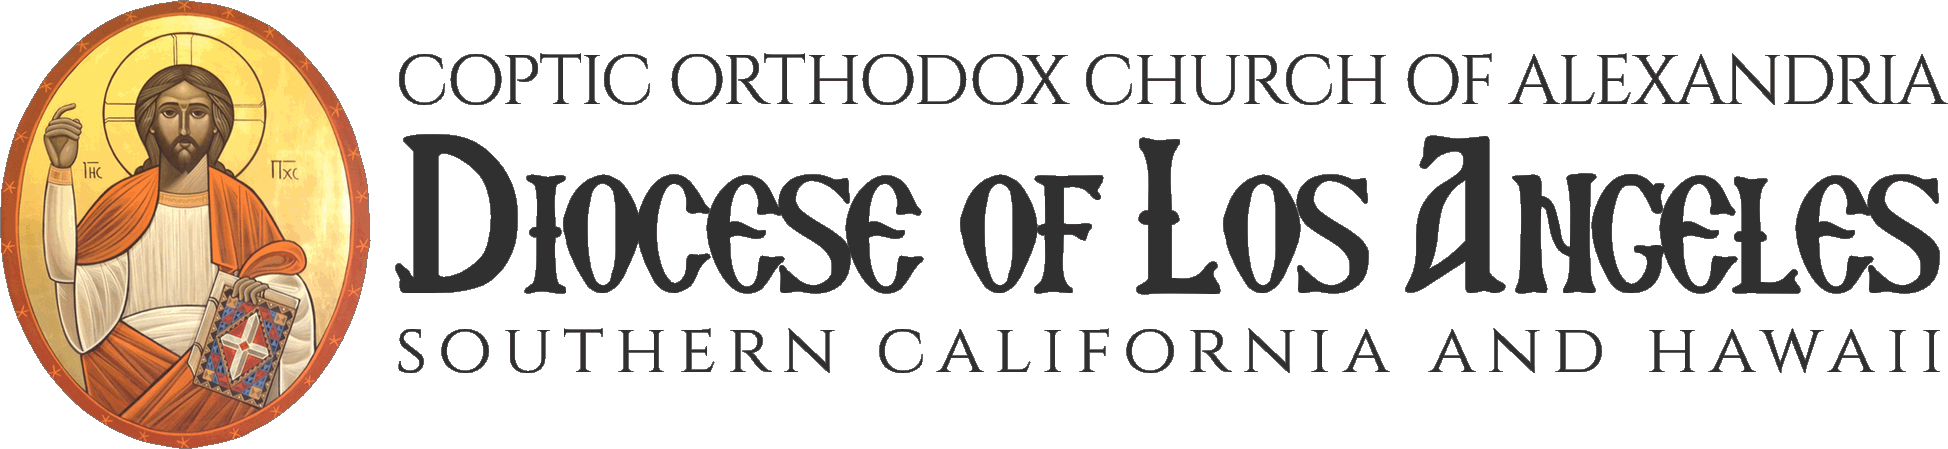 The Official Website of the Diocese under the Auspices of Metropolitan Serapion